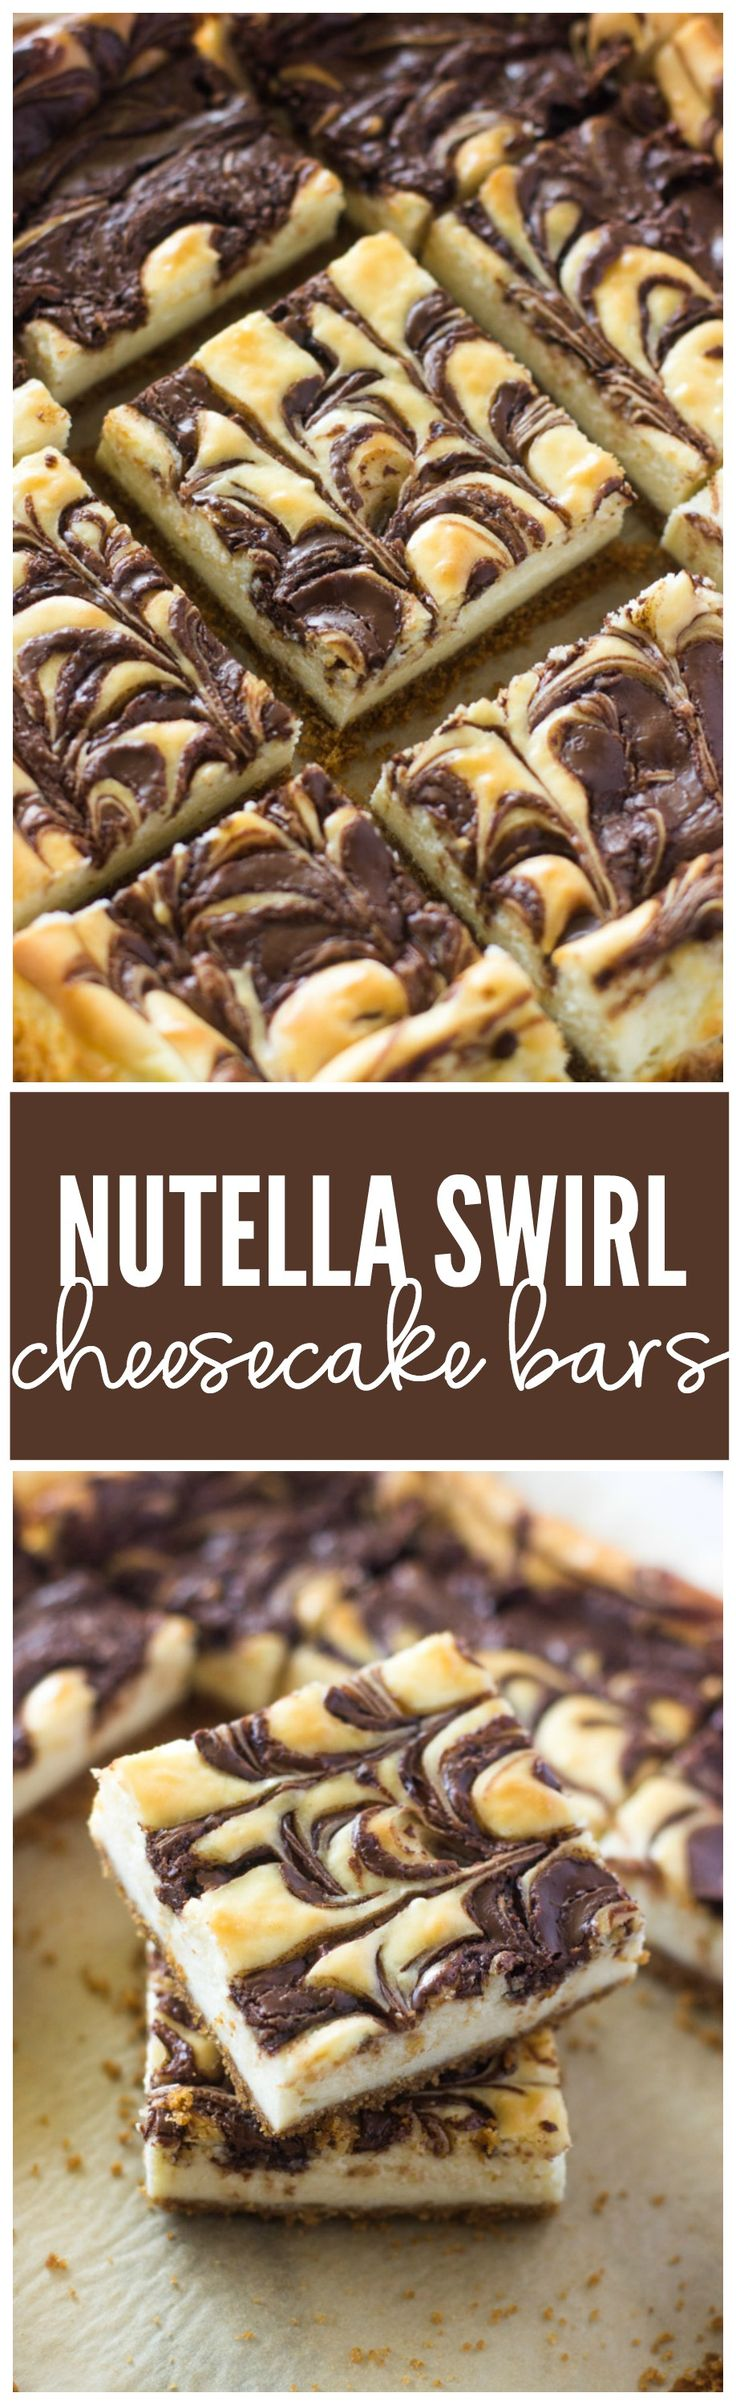 Smooth and creamy Cheesecake bars on a buttery graham cracker crust with swirls of Nutella.